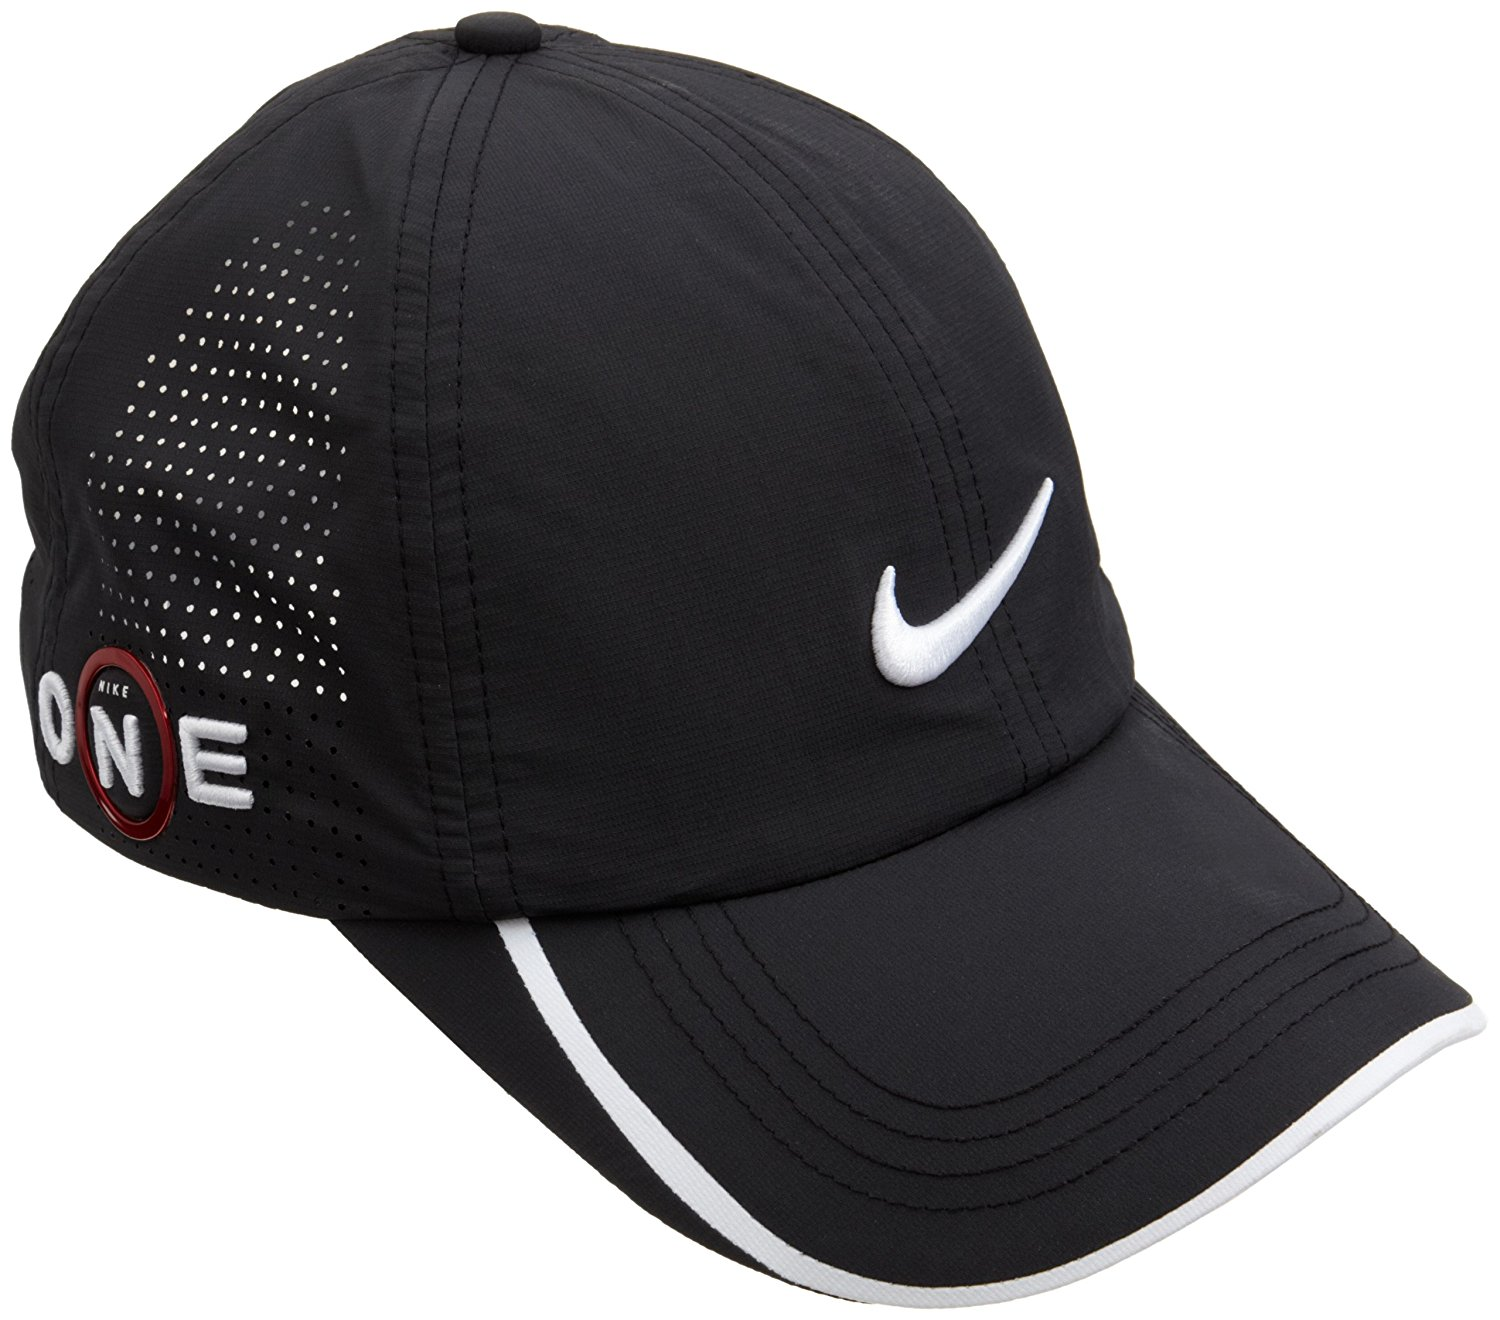 57ac9e9ddc5 Buy Nike Adult One Dri-FIT Perforated Golf Hat in Cheap Price on ...